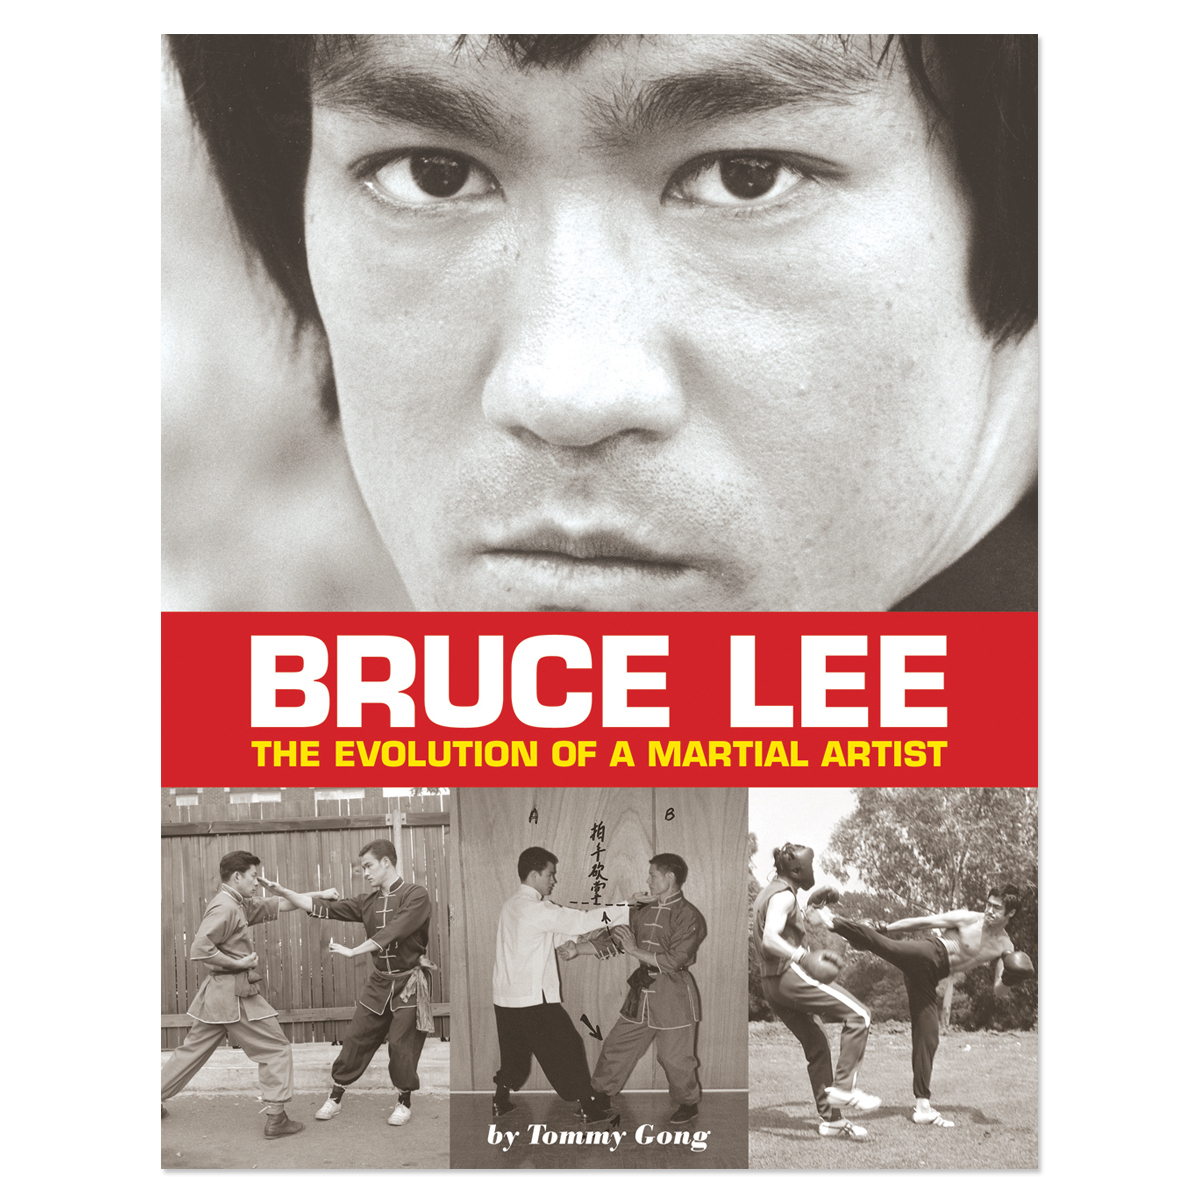 Bruce Lee - The Evolution Of A Martial Artist